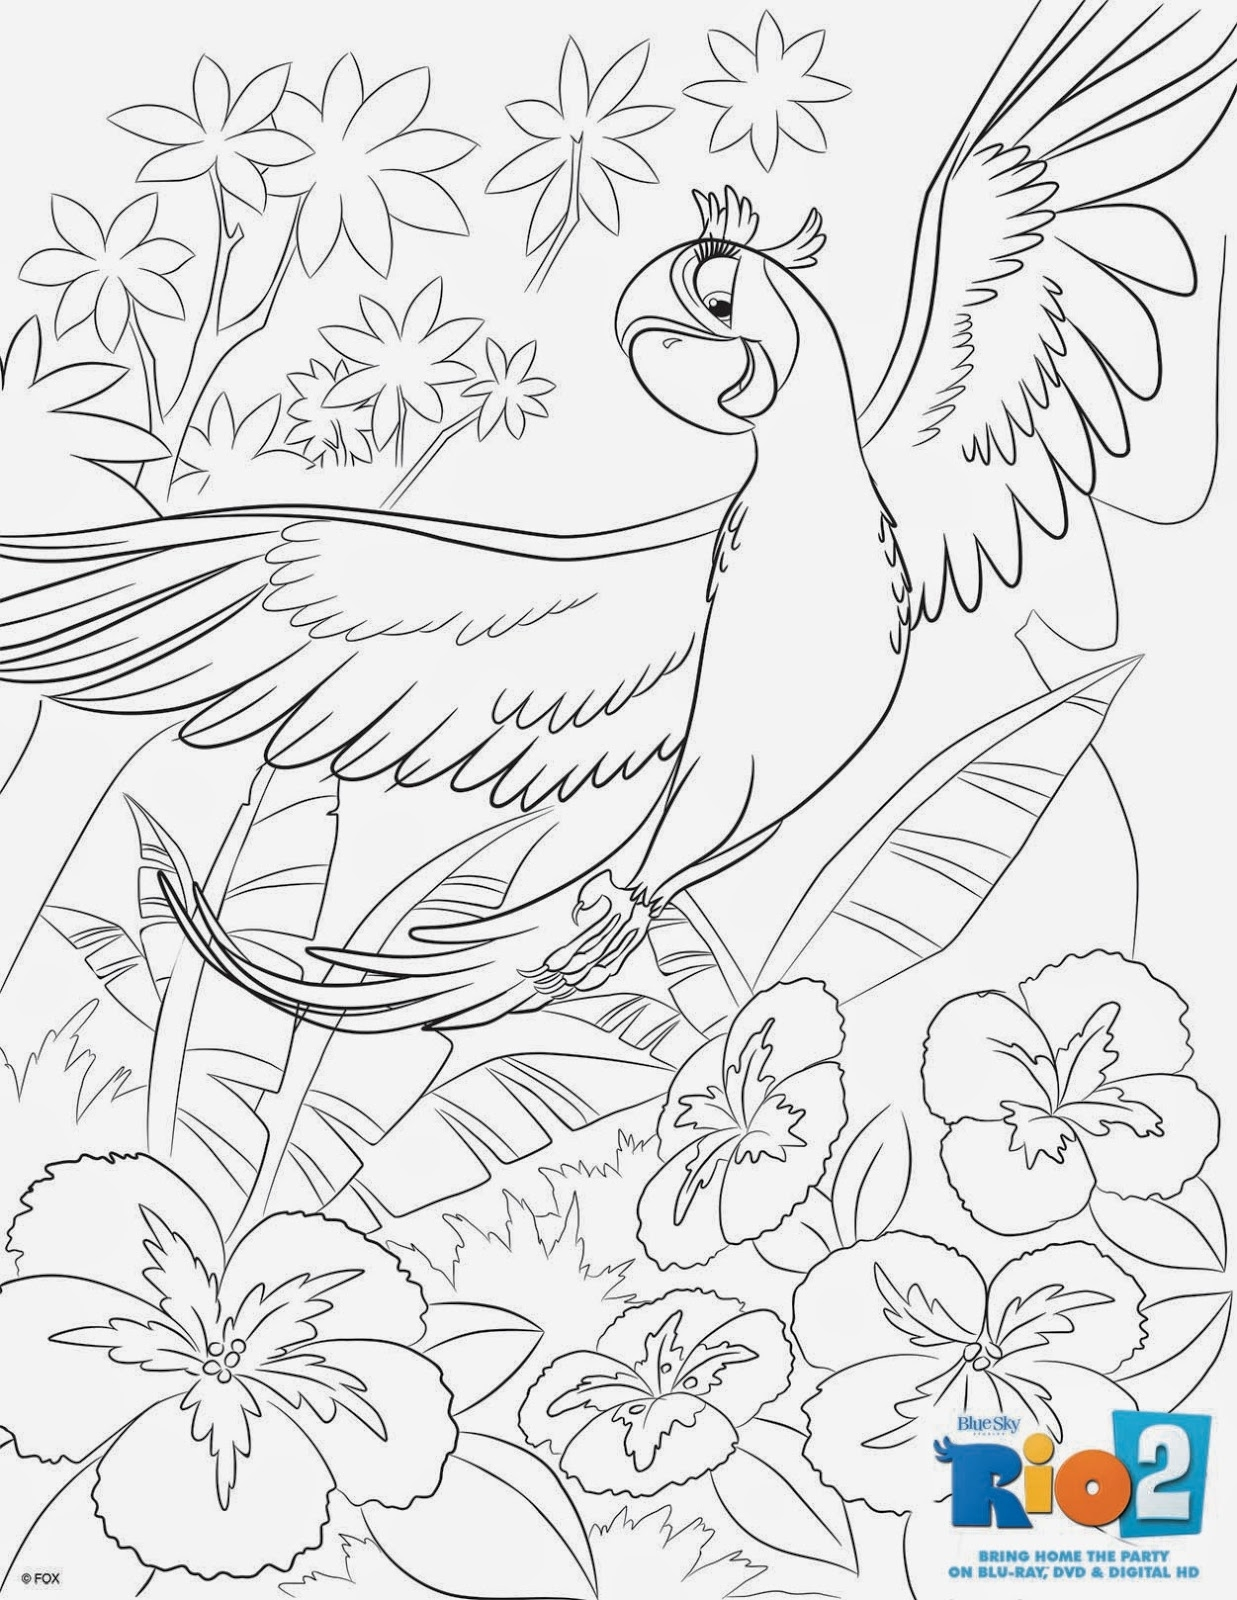 sea otter coloring page - scarlet macaw coloring page